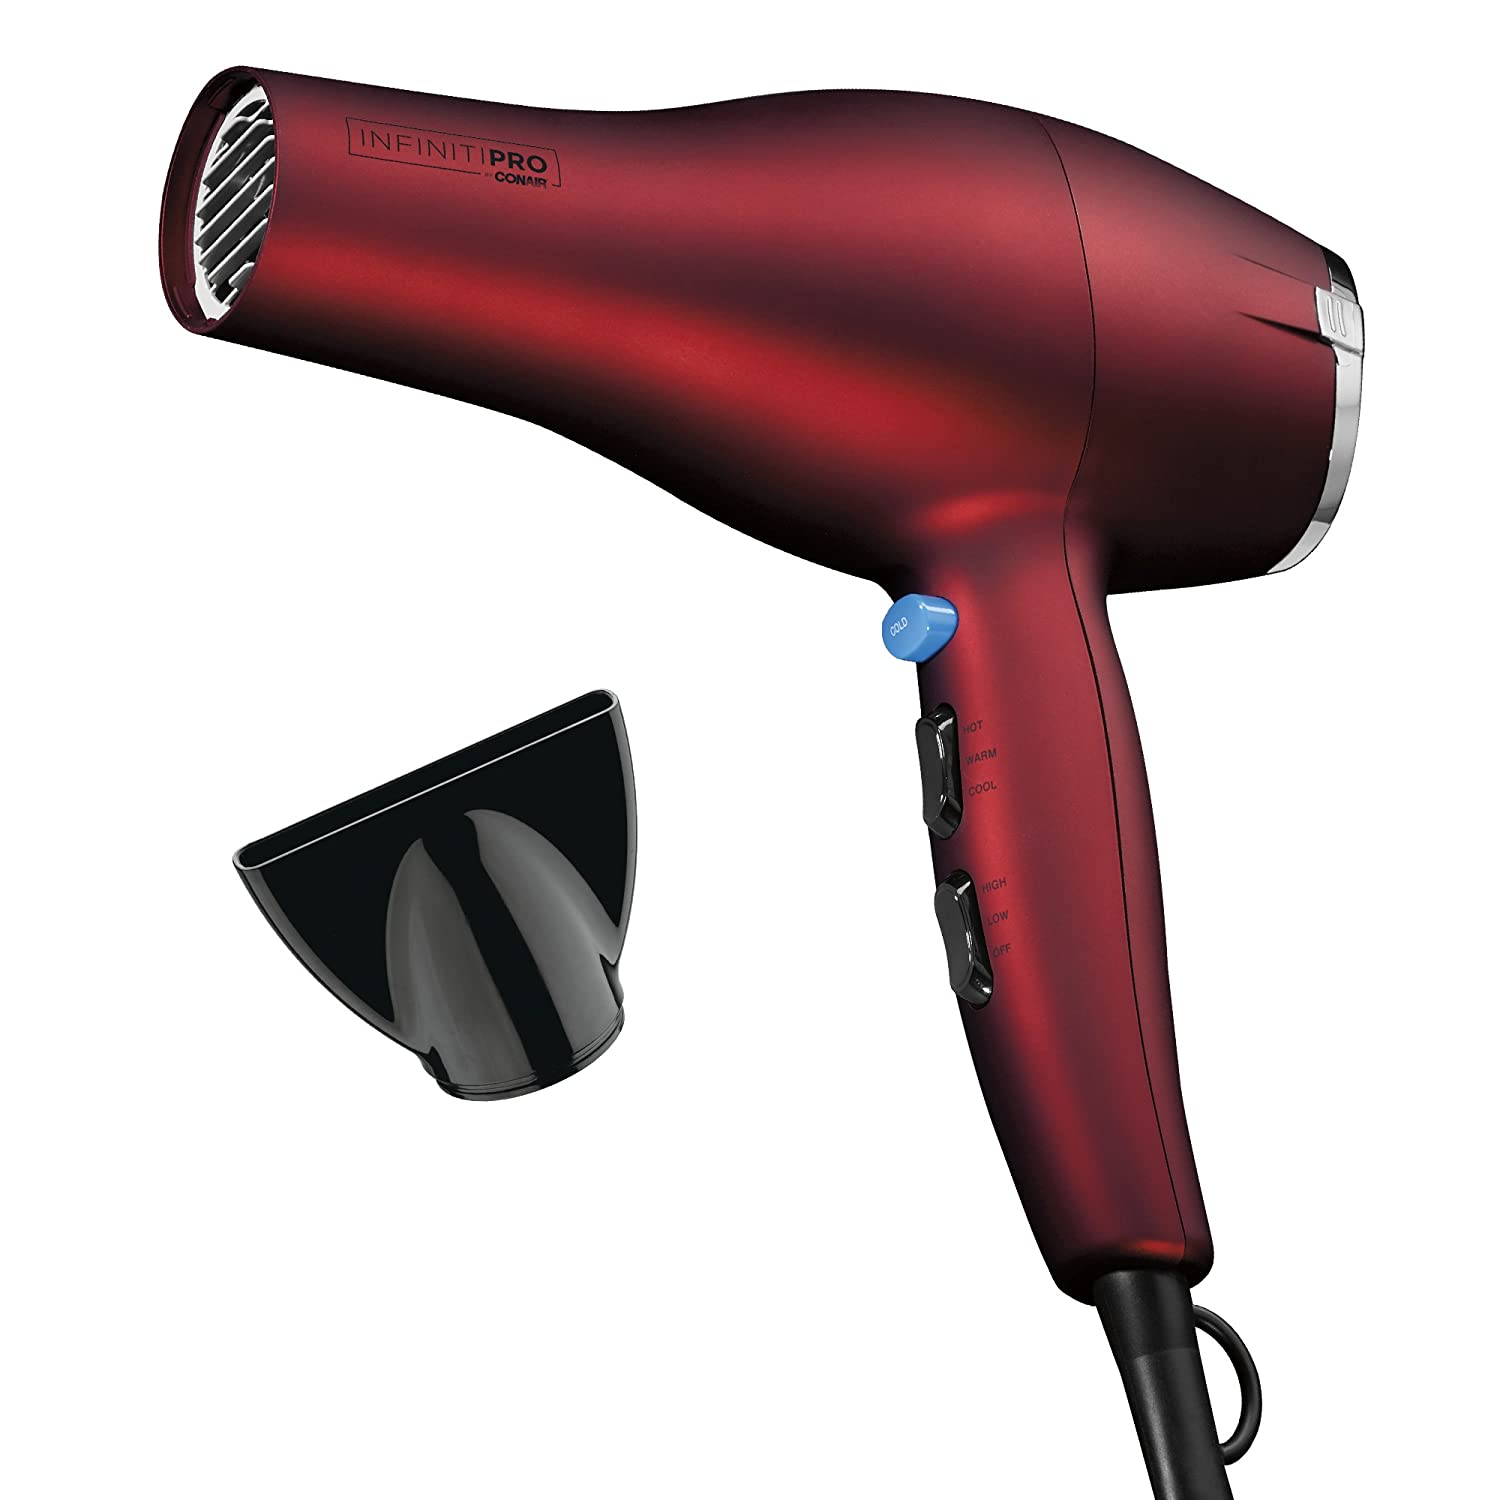 INFINITIPRO BY CONAIR 1875 Watt Salon Performance Hair Dryer/Styler, Full Size with AC Motor, Pink Ombre 294NP